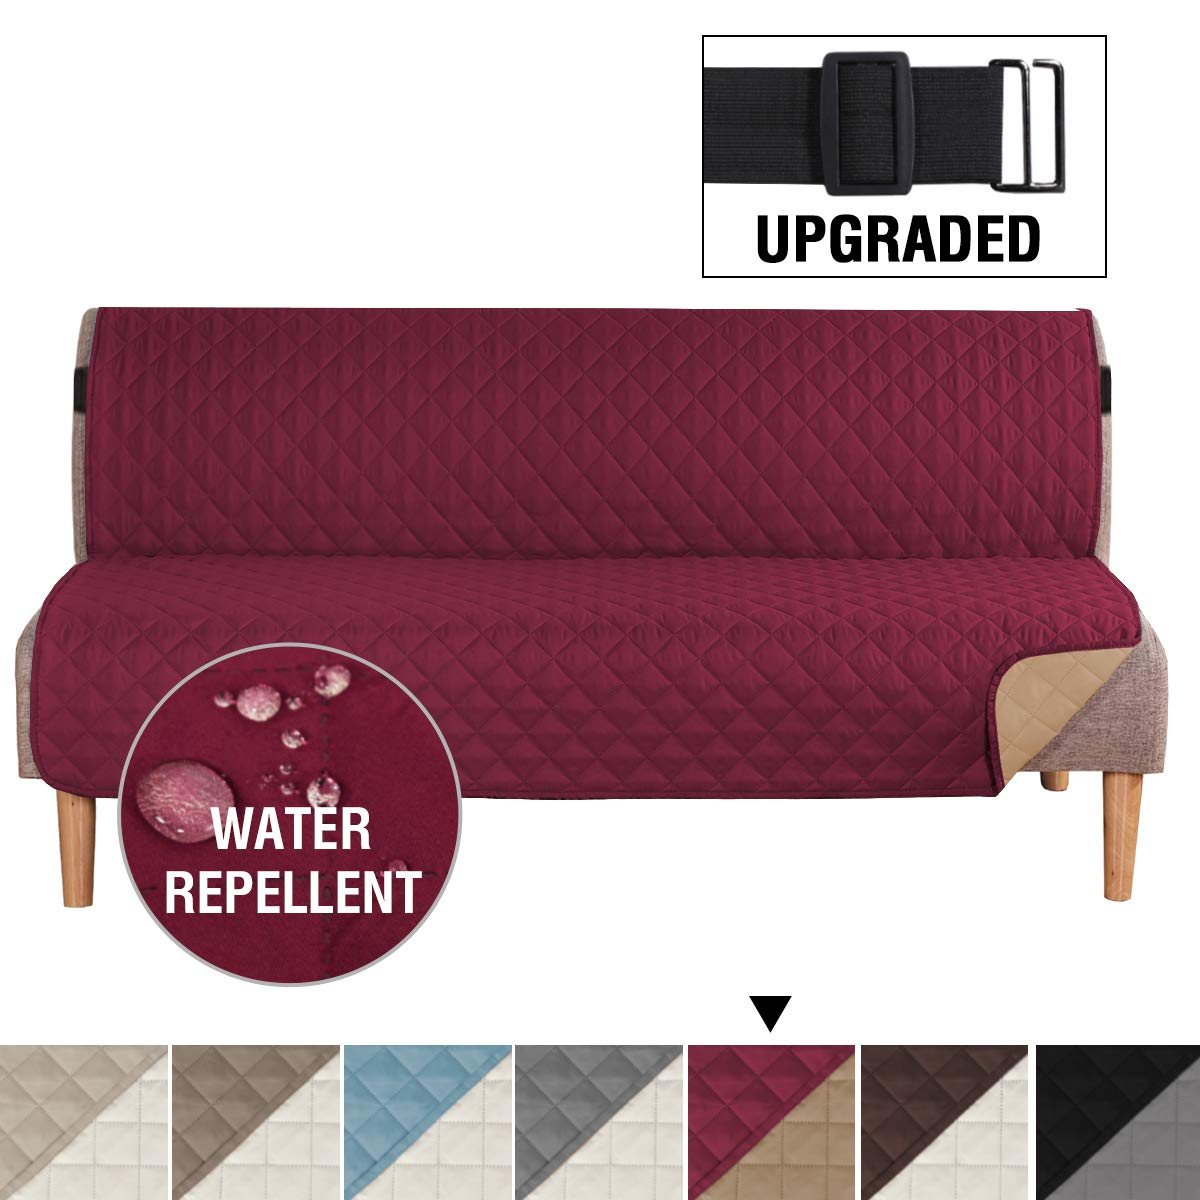 """H.VERSAILTEX Reversible Futon Slipcover Seat Width Up to 70"""" Washable Furniture Protector Water Repellent Futon Cover for Living Room 2"""" Elastic Strap Anti-Slip Futon Cover for Dogs Burgundy/Tan"""